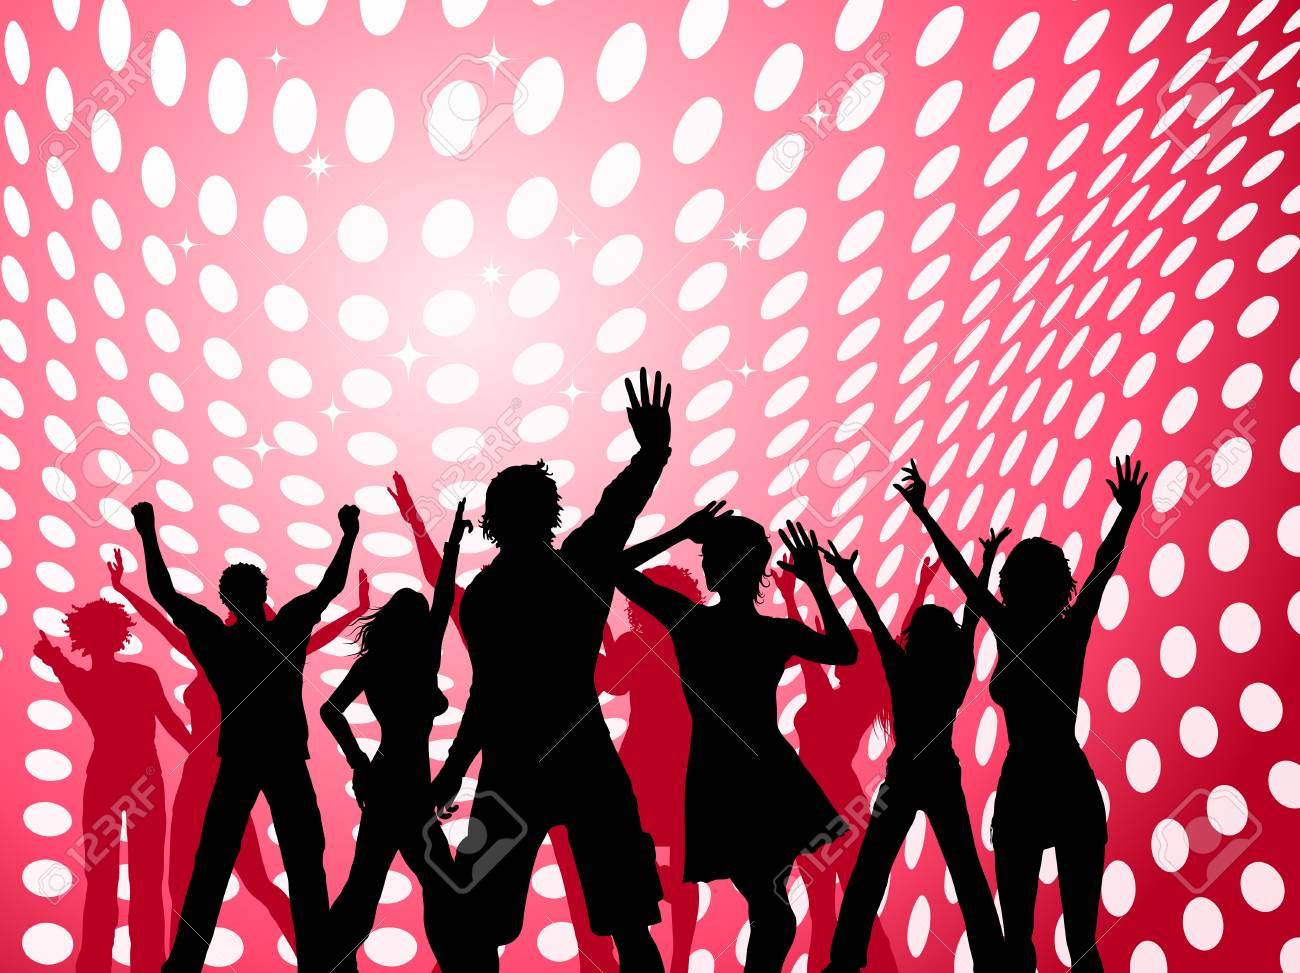 Silhouettes of people dancing on dot background Stock Vector - 4644300